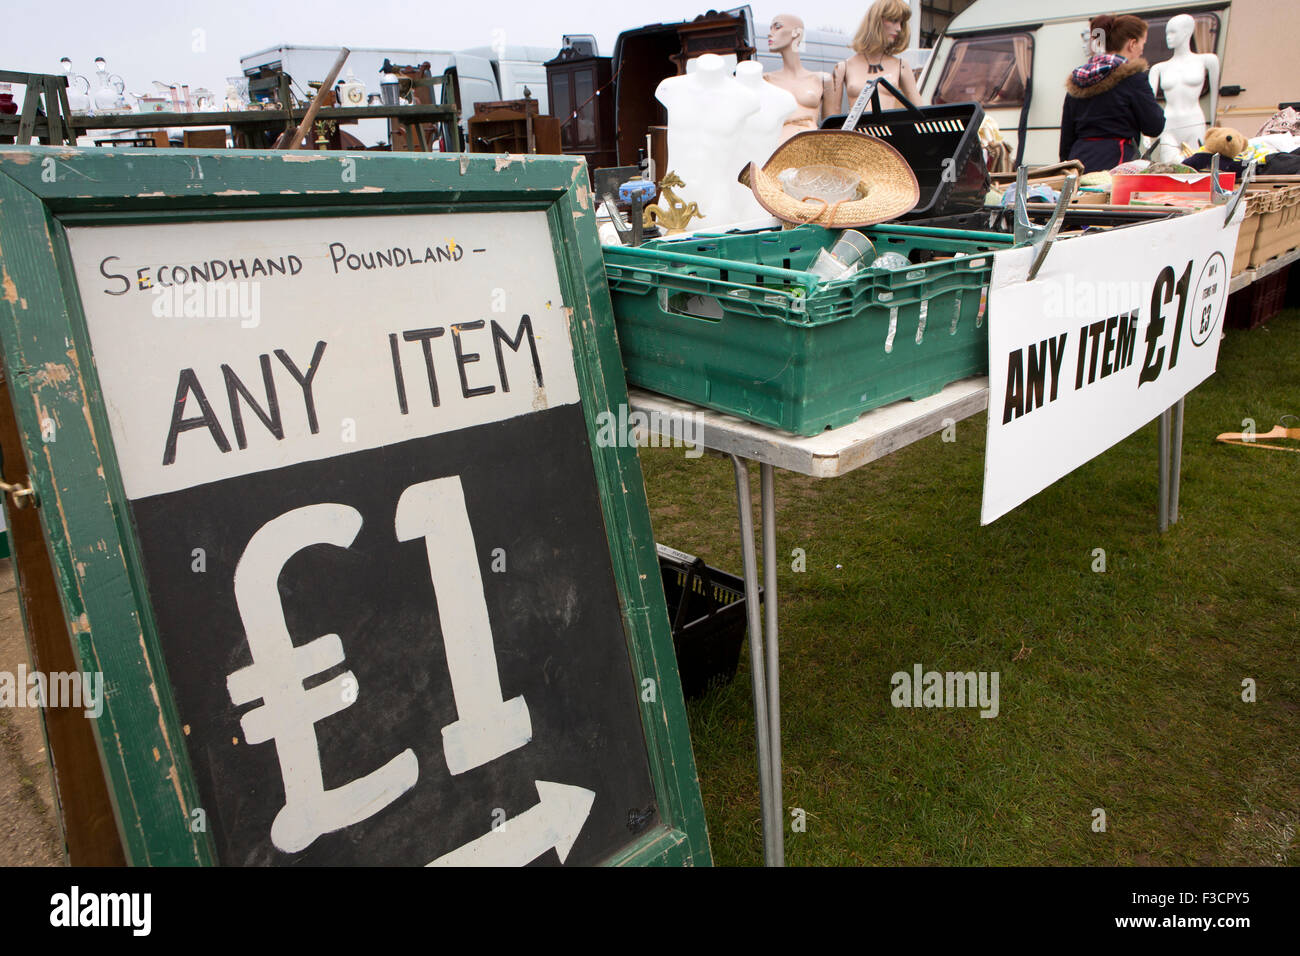 UK, England, Lincolnshire, Lincoln, Antiques Fair, secondhand poundland, any item £1 sign - Stock Image